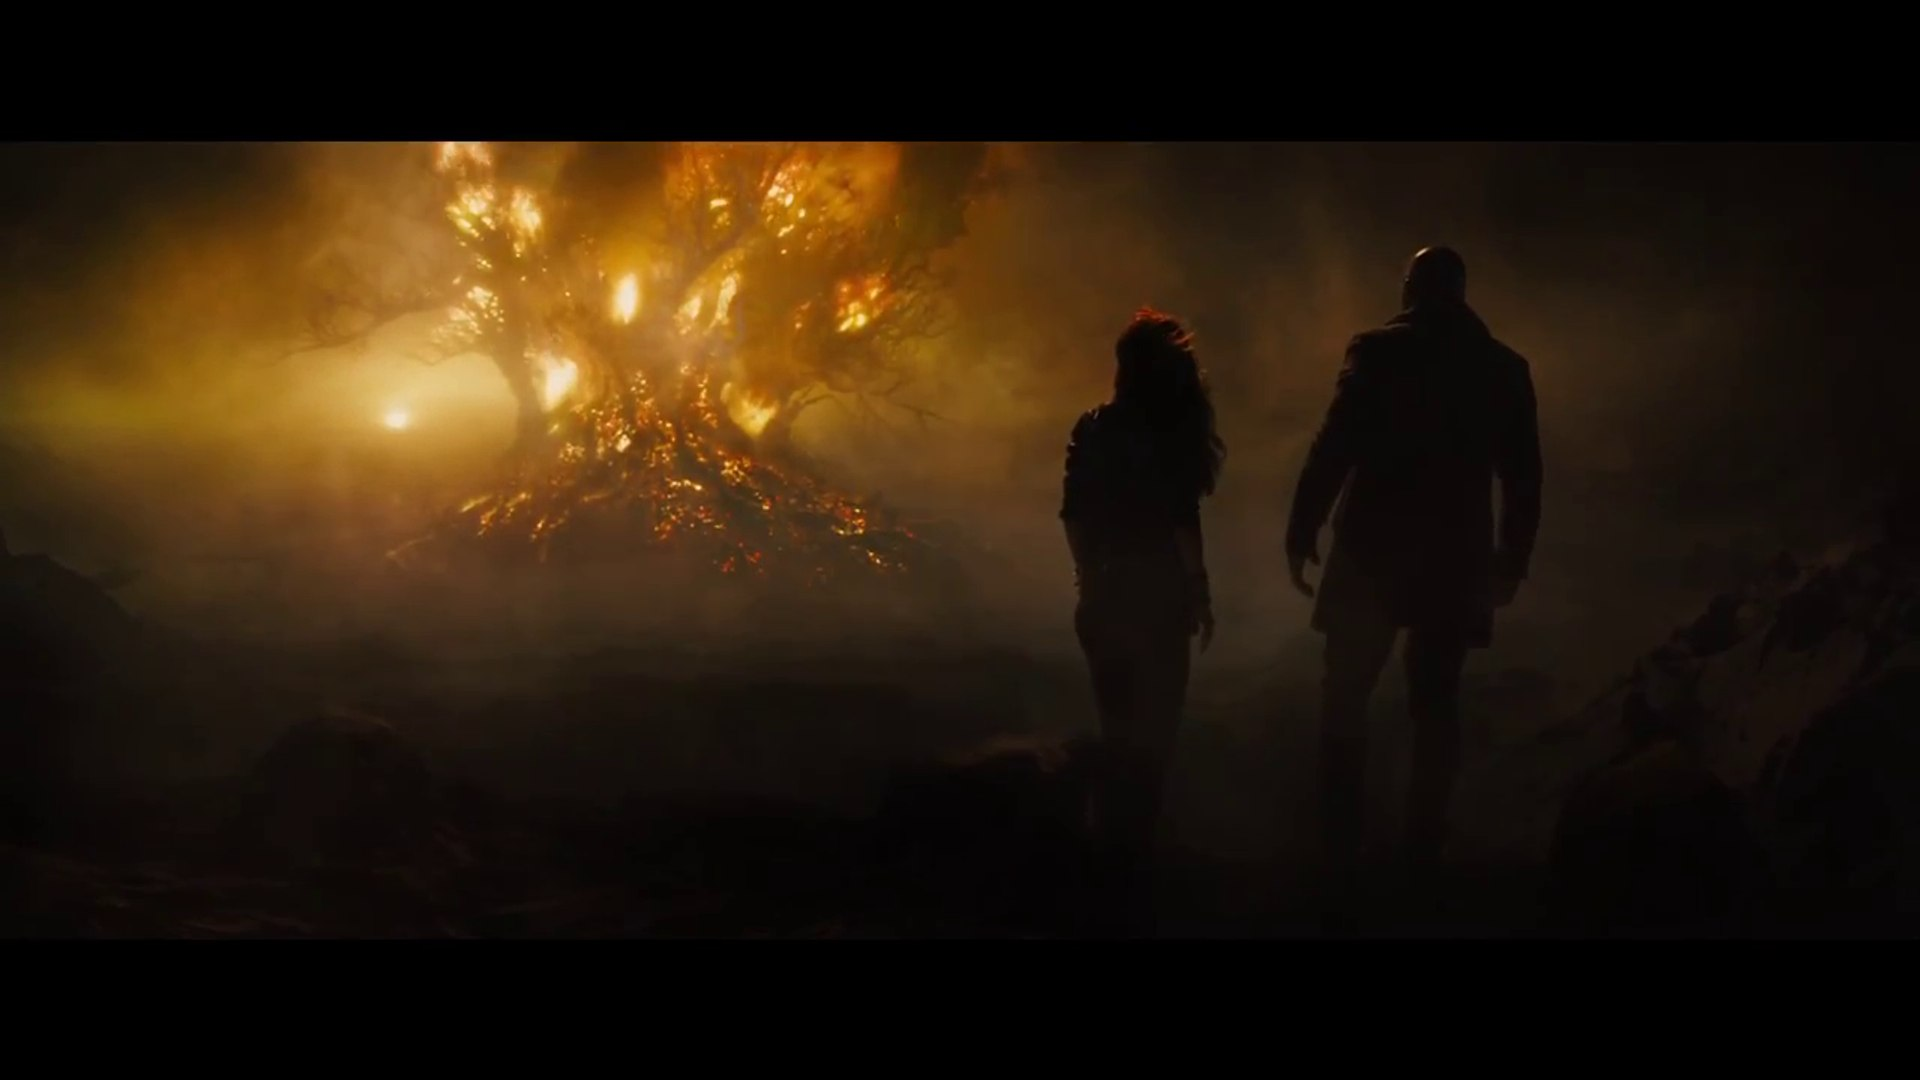 The Last Witch Hunter Official Trailer (2015) - Vin Diesel, Michael Caine Fantasy Action Movie